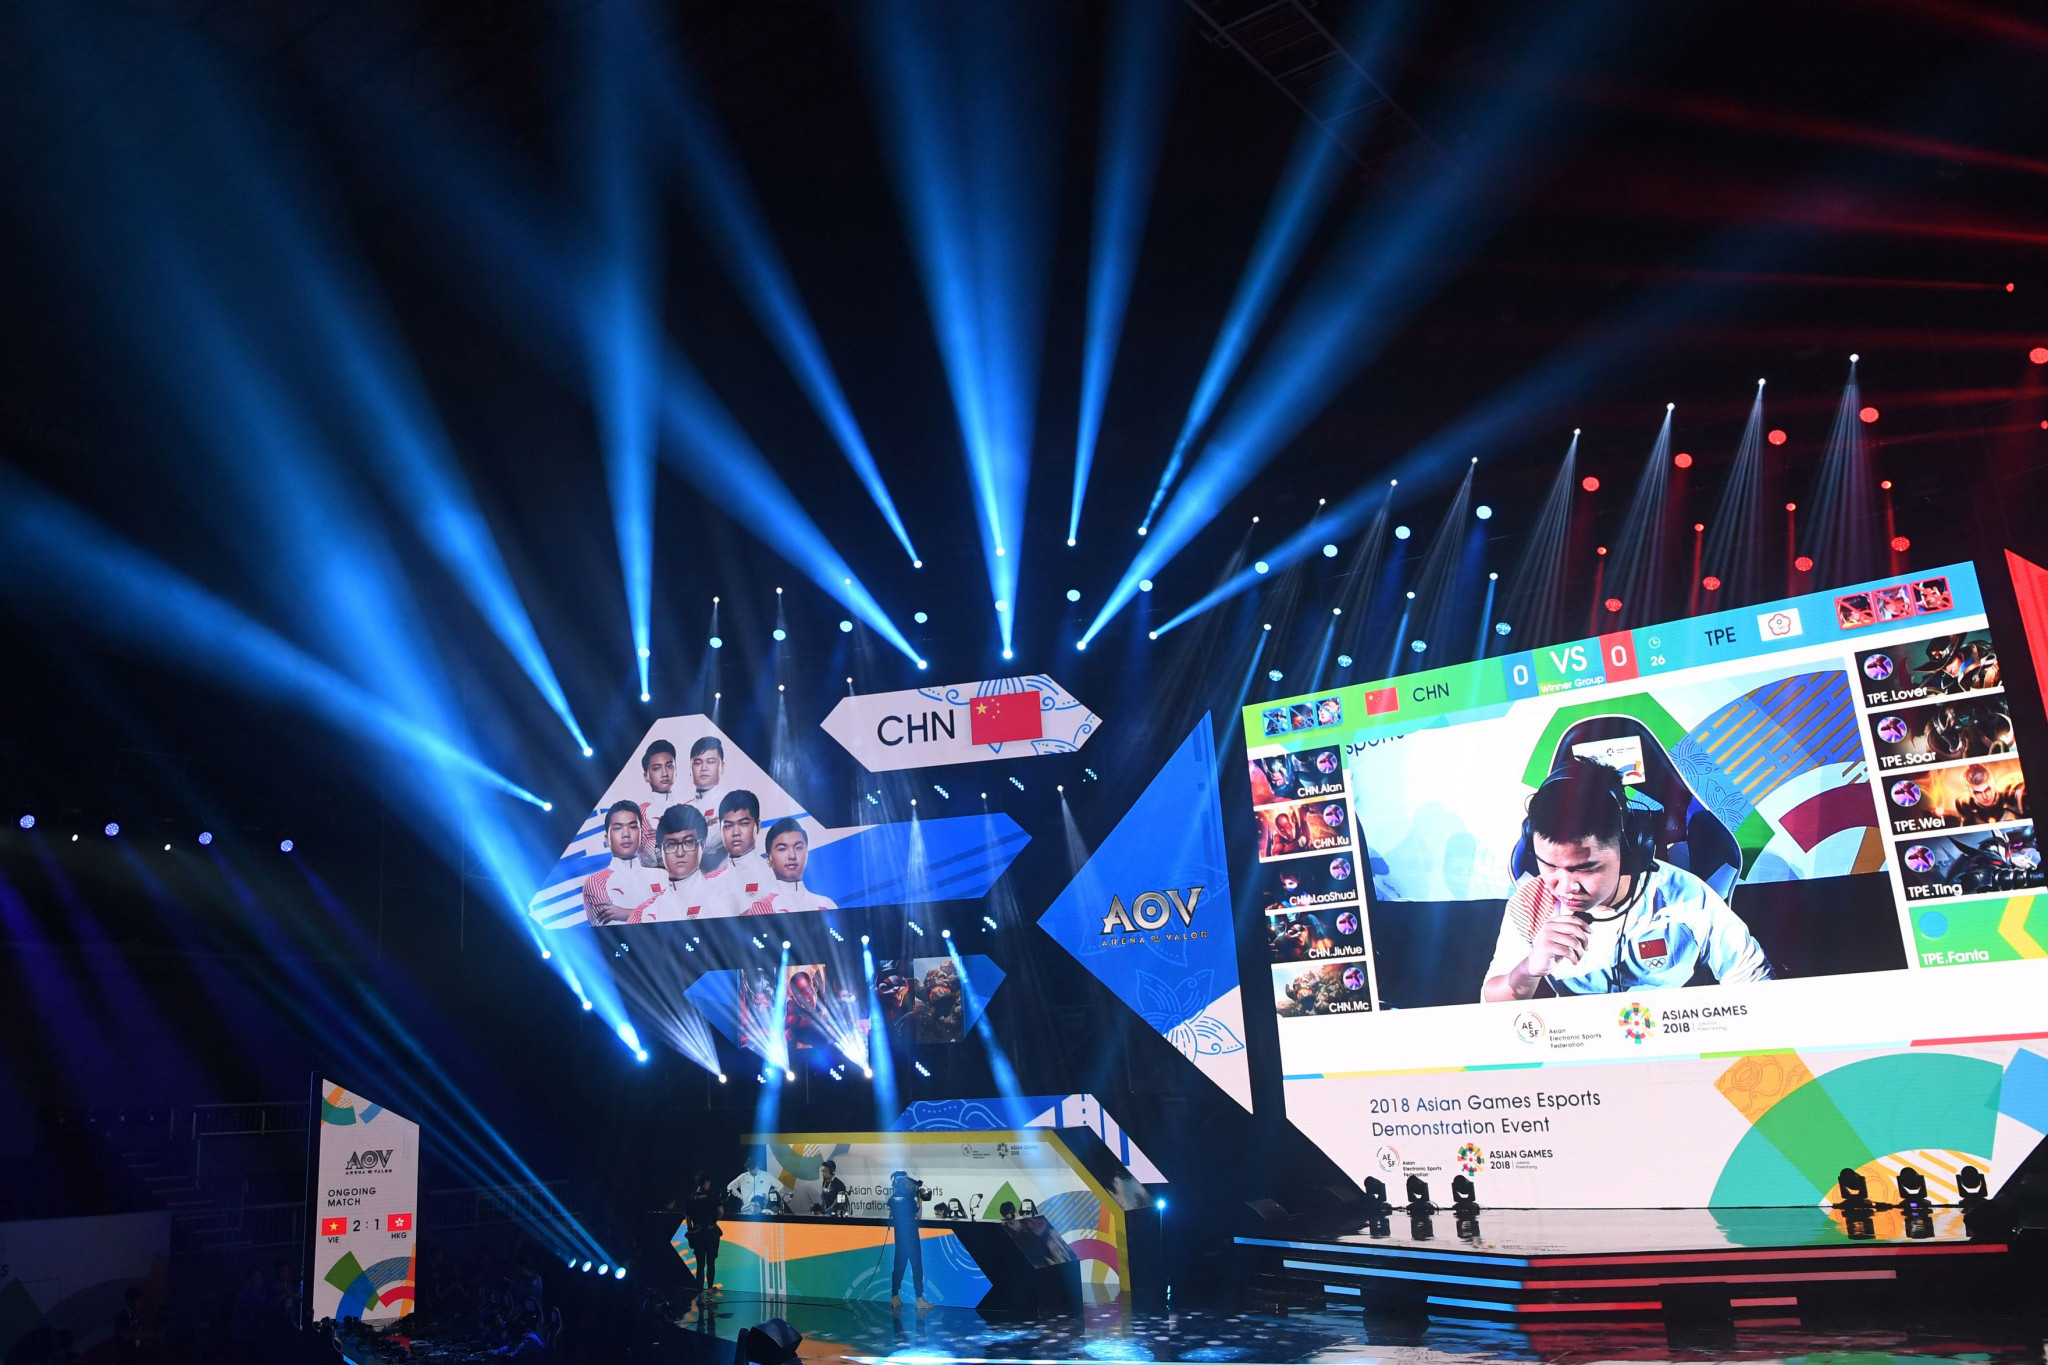 """Asian Electronic Sports Federation expresses pride in organising """"historical"""" event as esports makes Asian Games debut"""